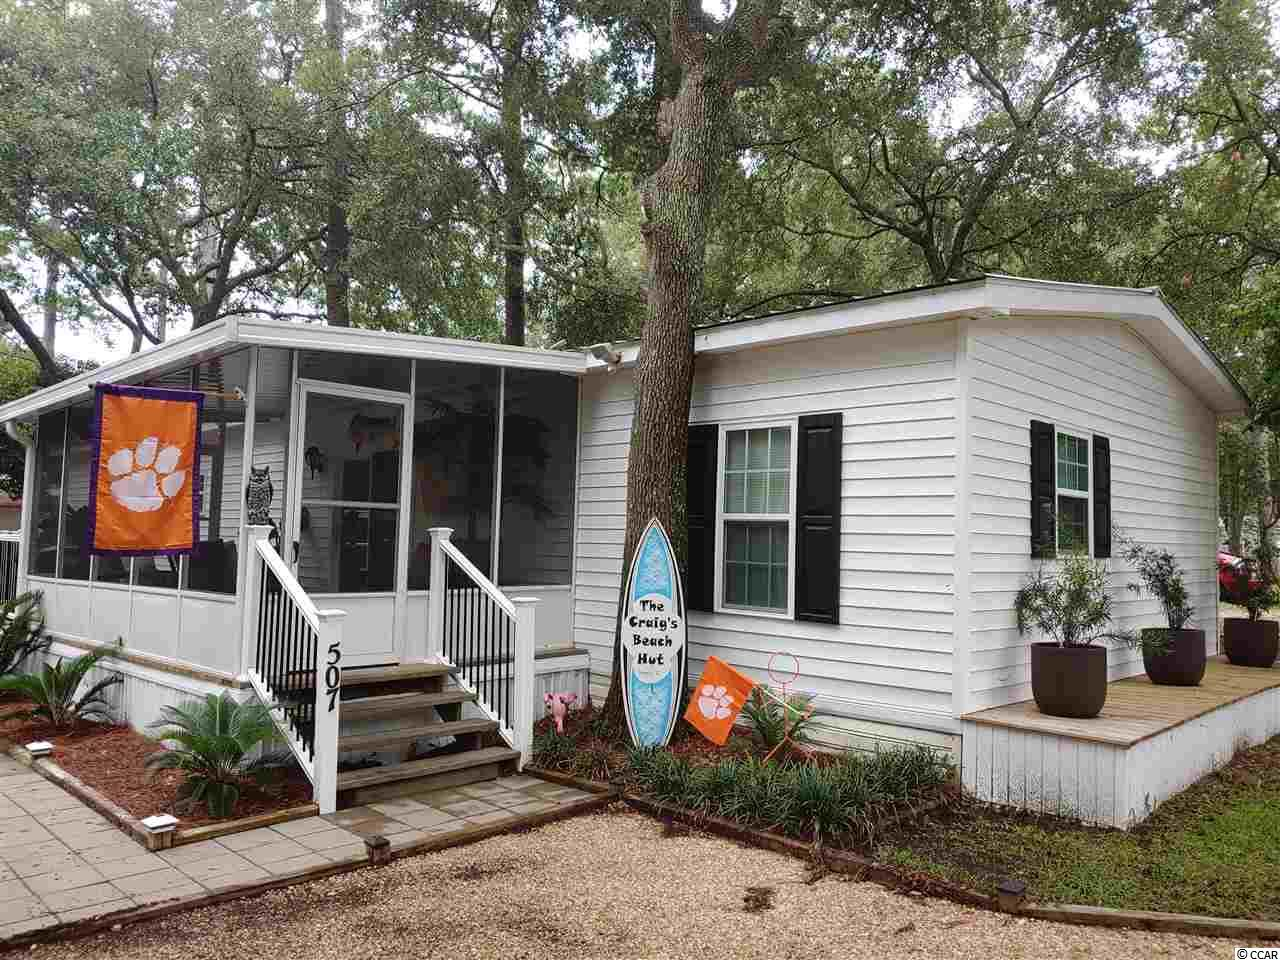 Come see your next home away from home. Conveniently located with just a short walk or golf cart ride away from Garden City pier and beach. This updated beauty has plenty of room for you and your guests, with storage included! Outdoors there is a stone walkway that leads from the exterior built-i in shower to the screened in front porch. There's even an awning/carport to park your golf cart! You'll find a large shed out back and a huge storage closet inside. Two additional parking spaces are located out front! All appliances come with this home! The layout has been widened for more space than you typically find in this style of home. It is available furnished so if you want move in ready with beach access why not make this yours today! (Motorcycles and pets allowed. Boat is allowed if it fits under carport.